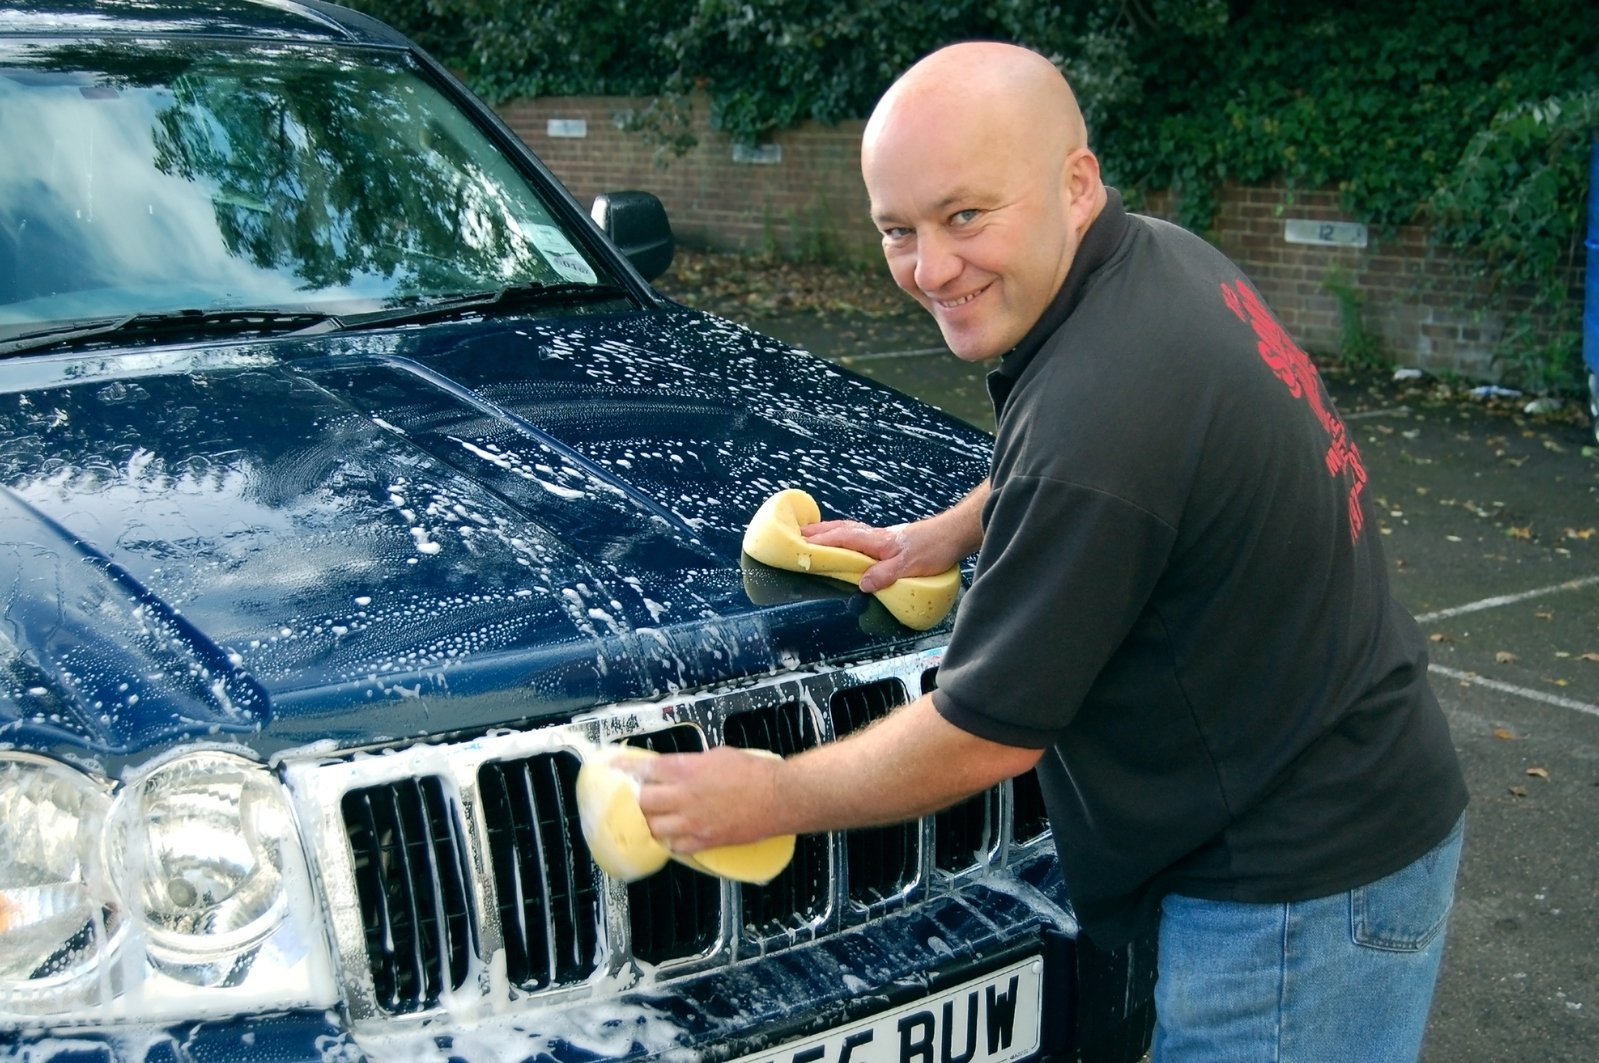 Free Hand Washing Car Stock Photo - FreeImages.com